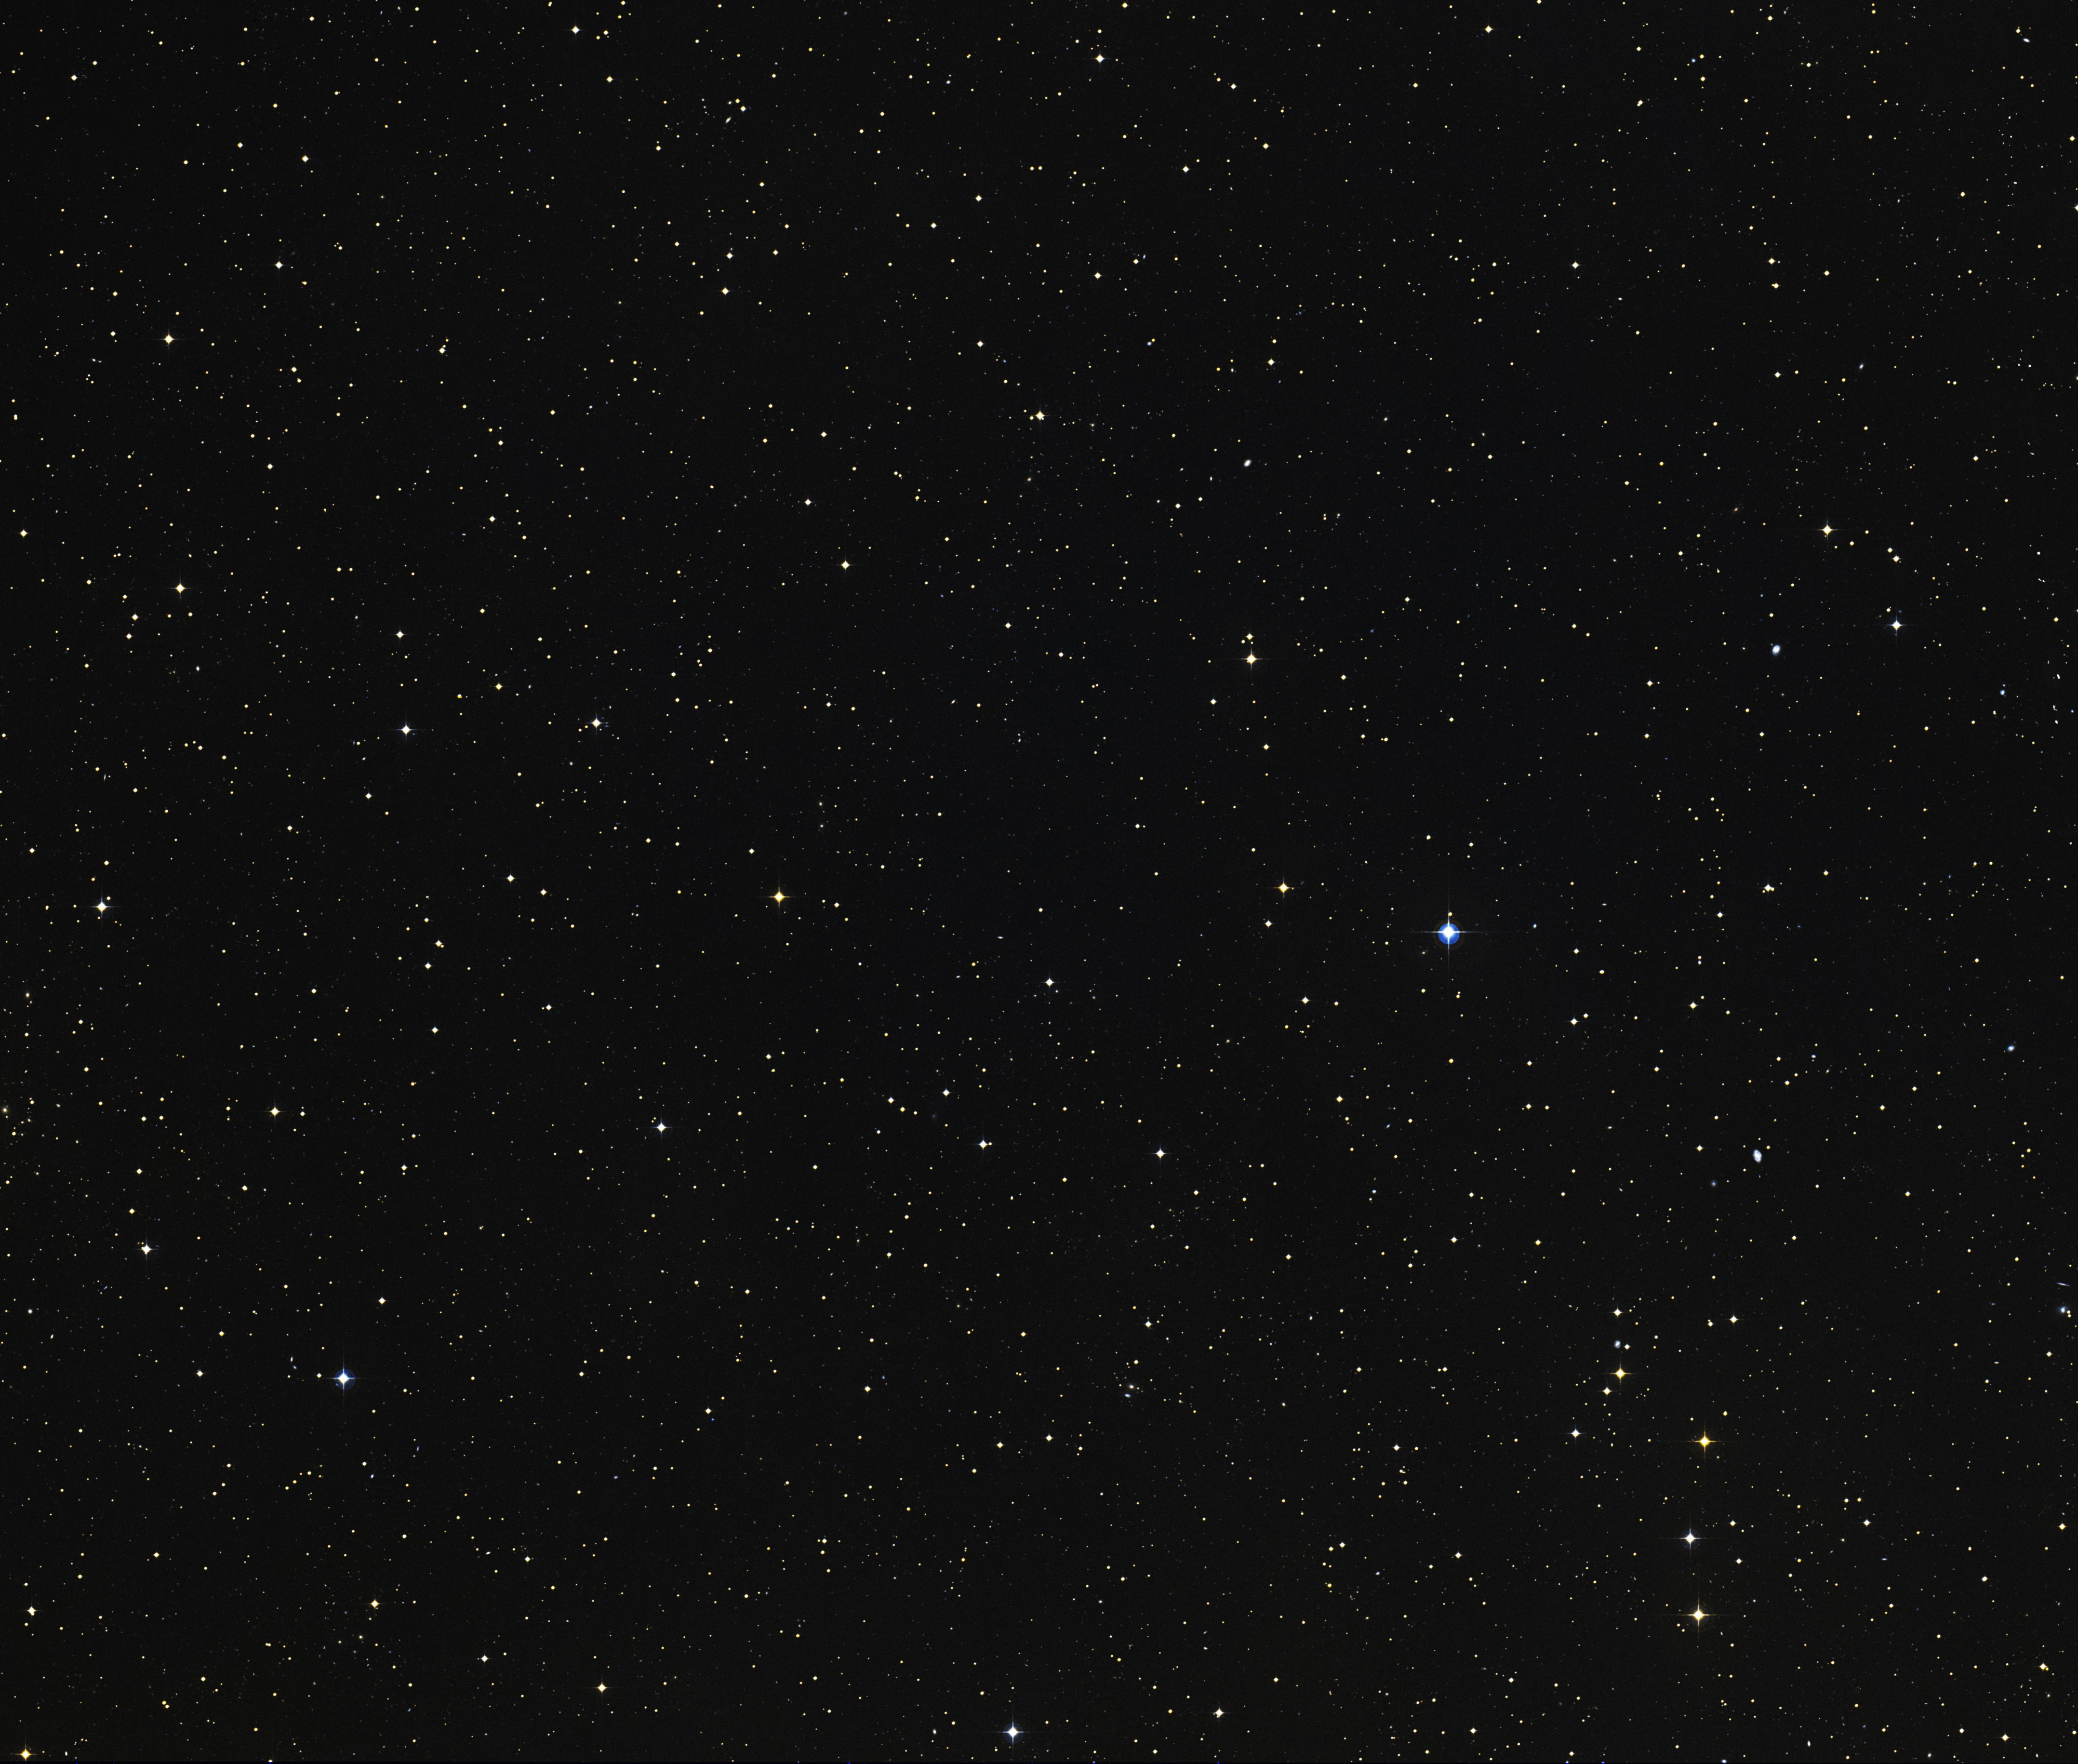 Region of Hubble Ultra Deep Field (Digitized Sky Survey)